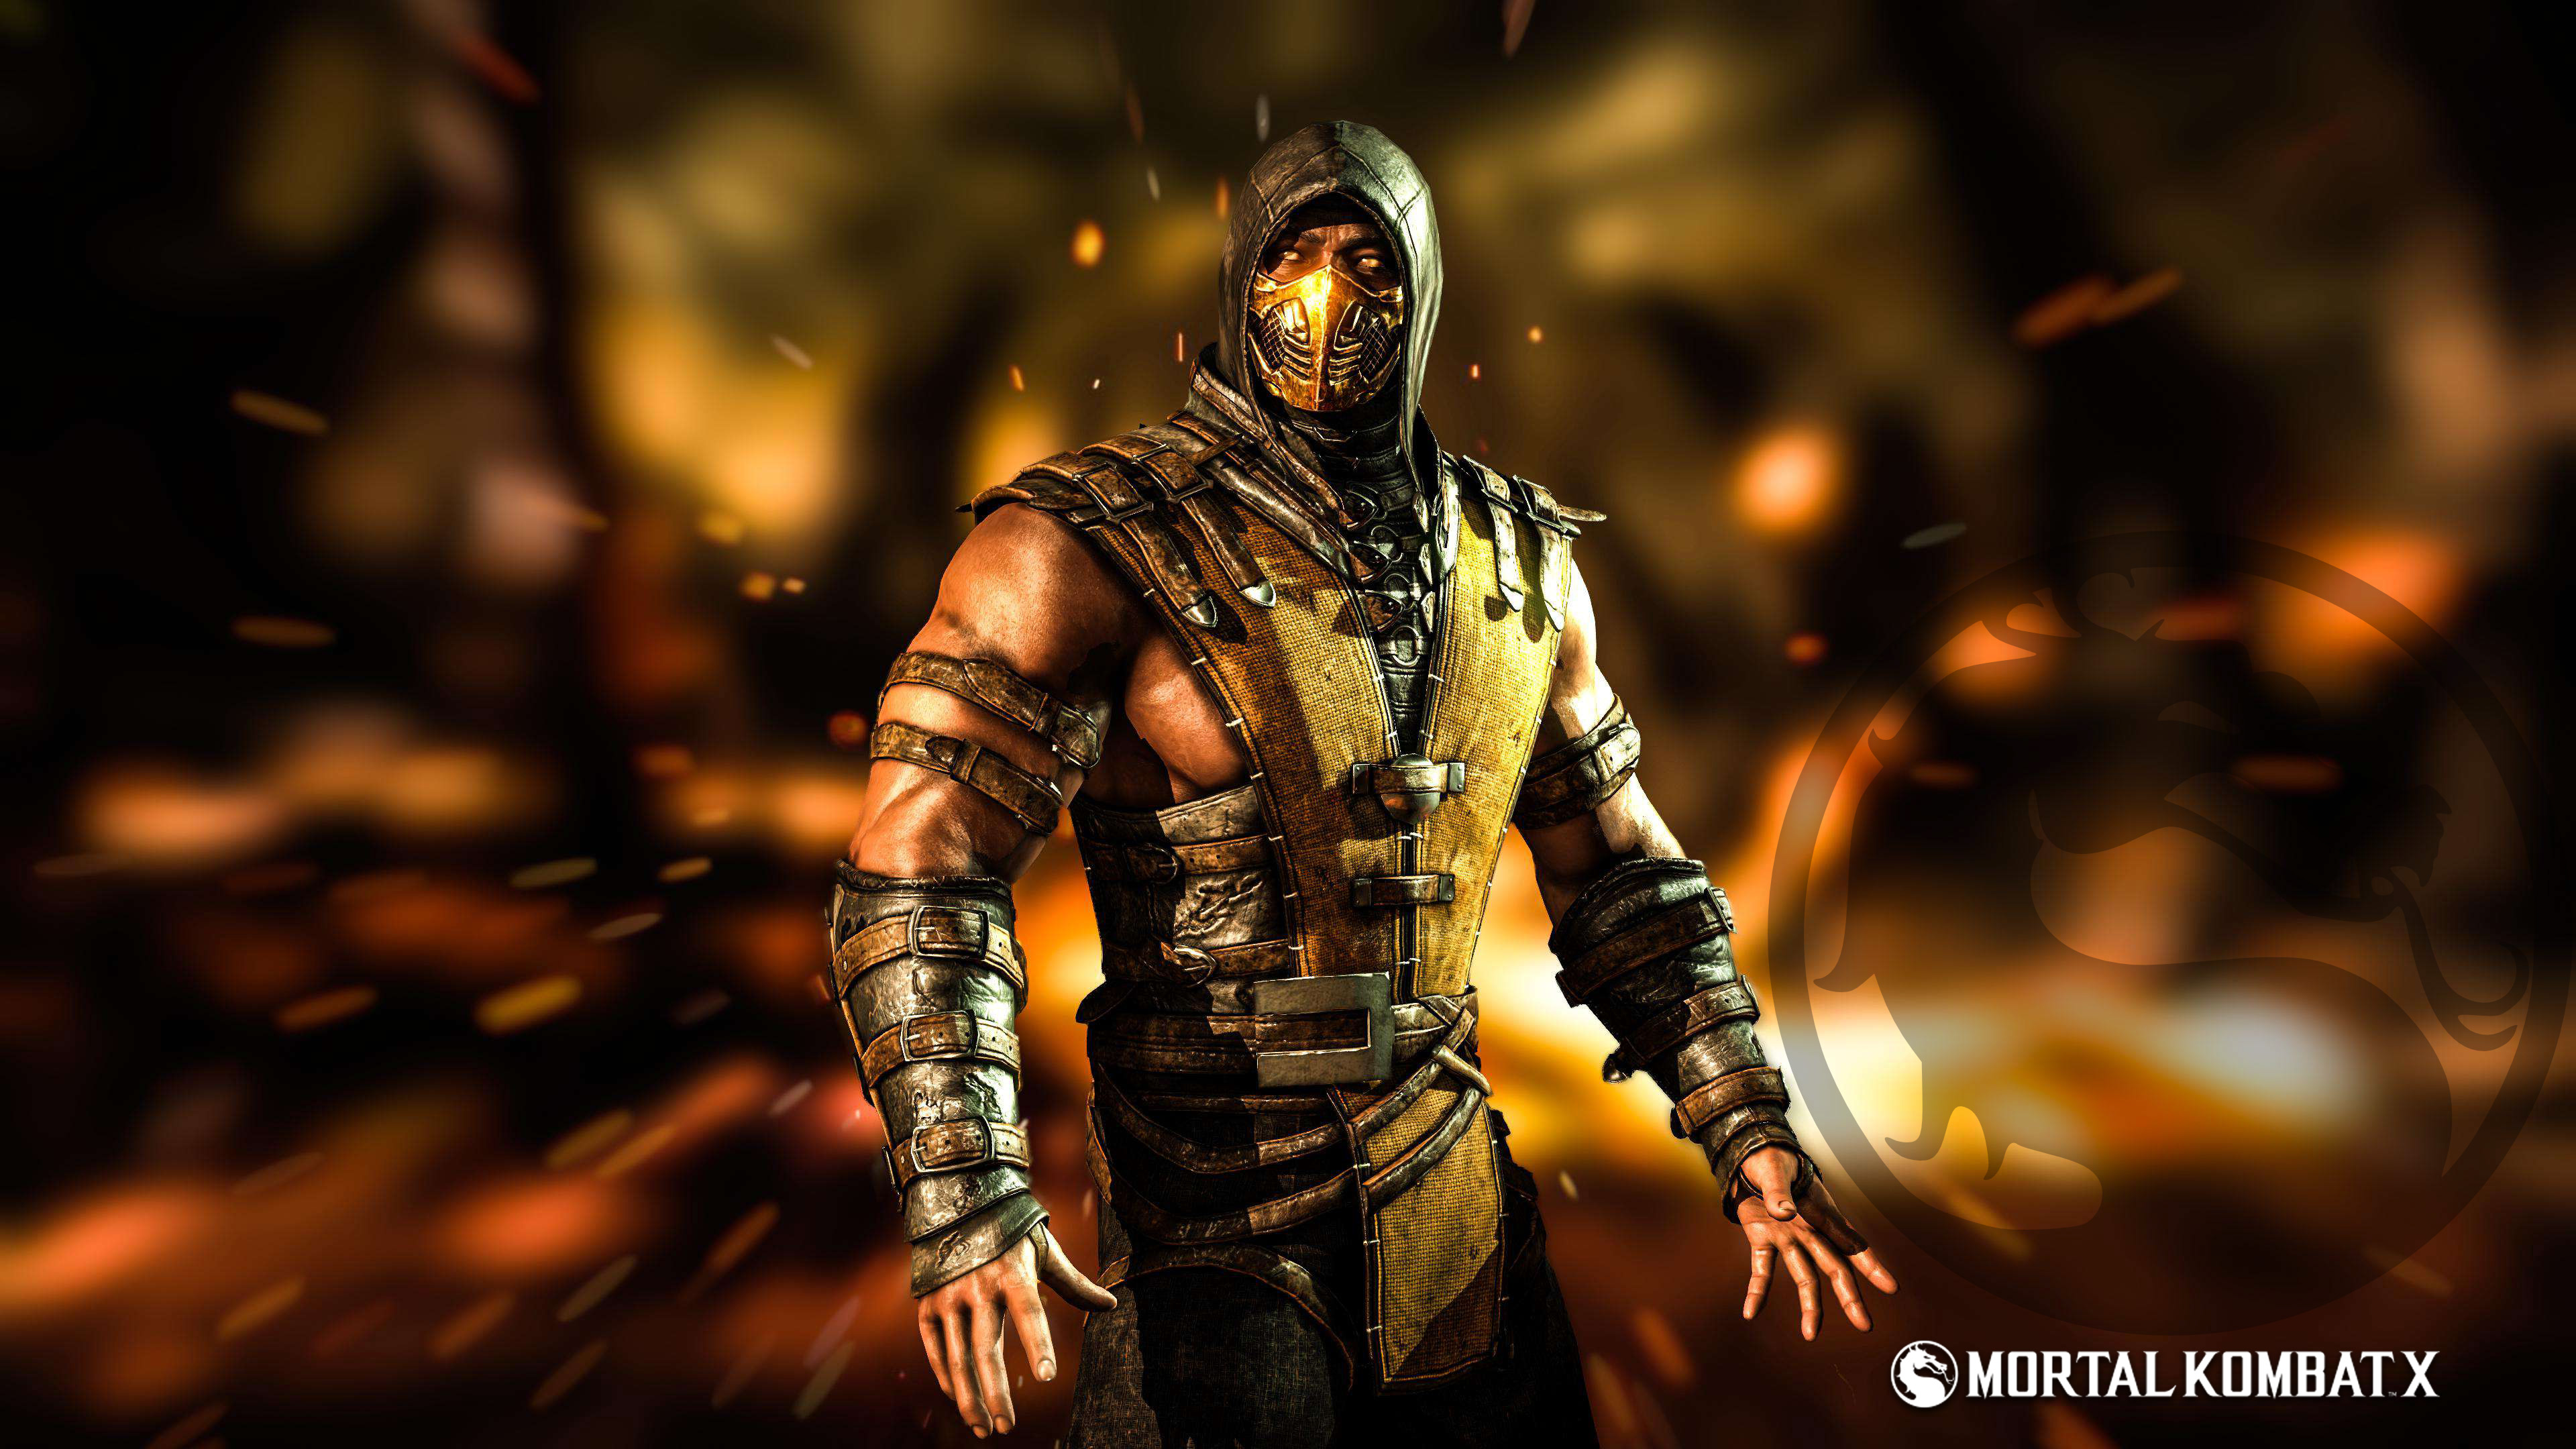 4k images of scorpion from mortal kombat hd wallpapers